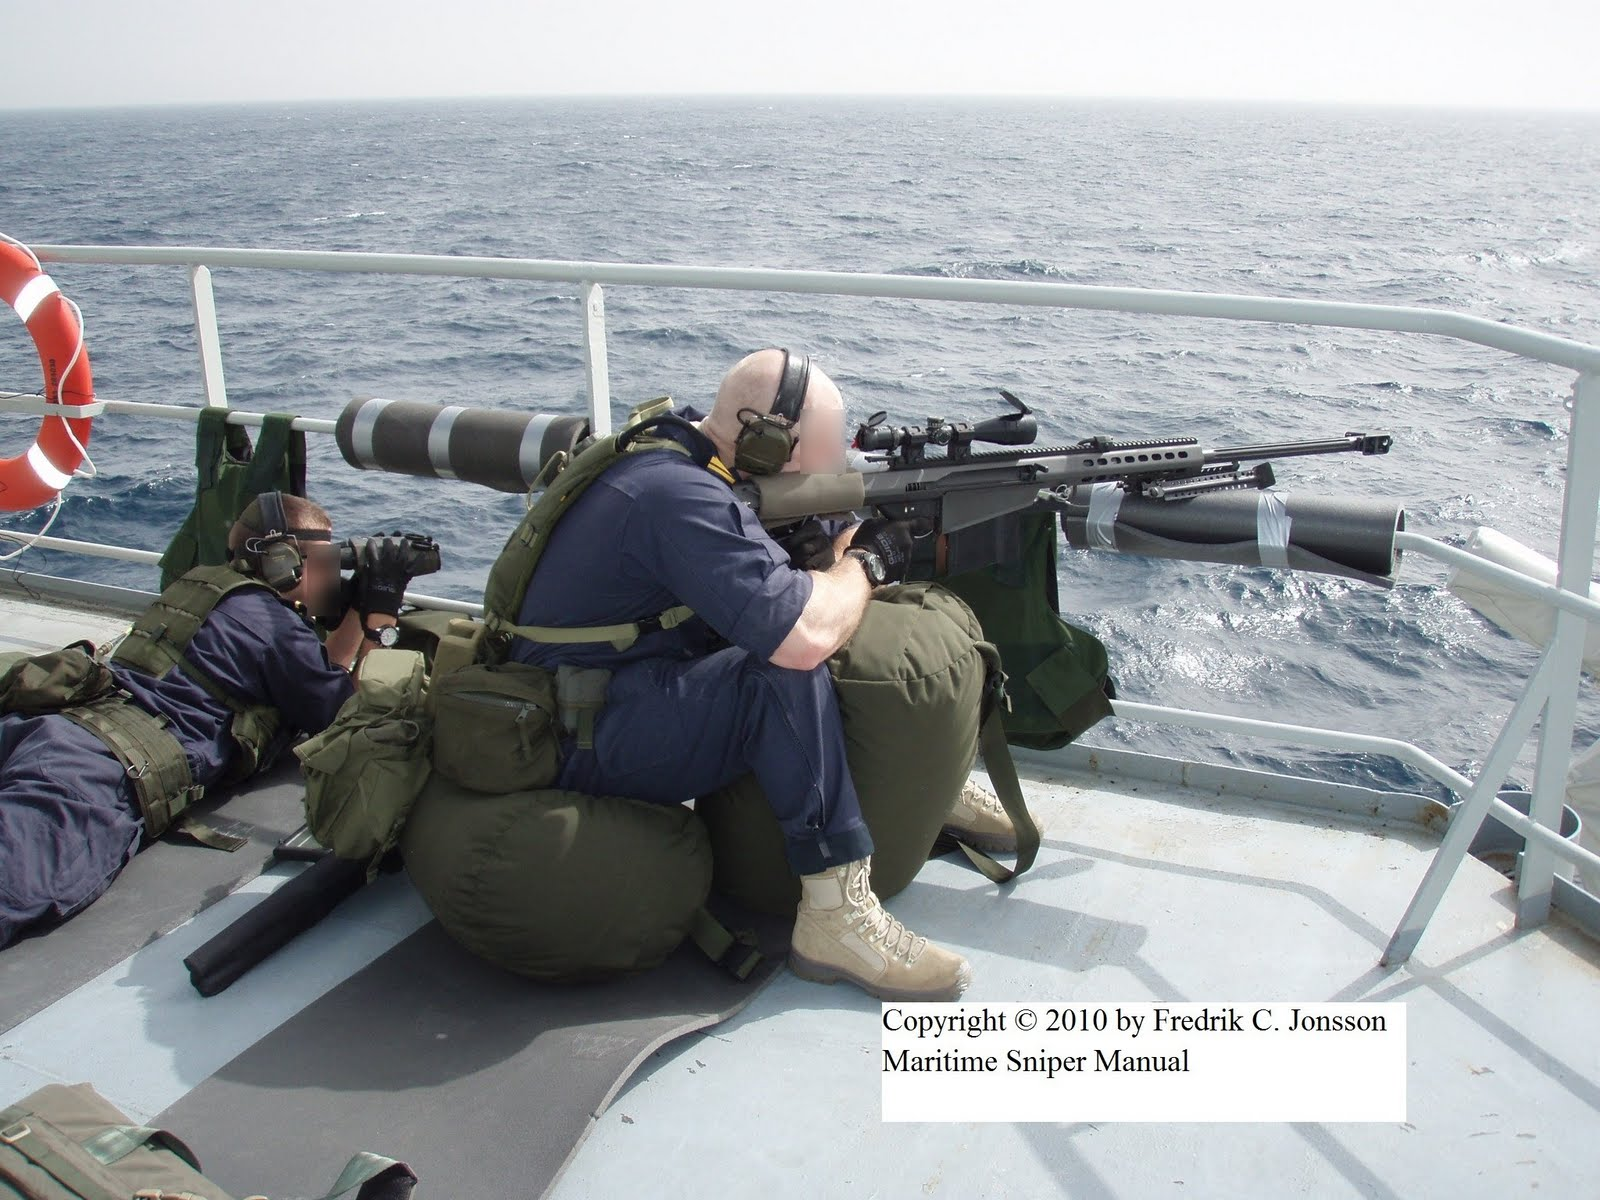 & Quotes about Maritime security (32 quotes)